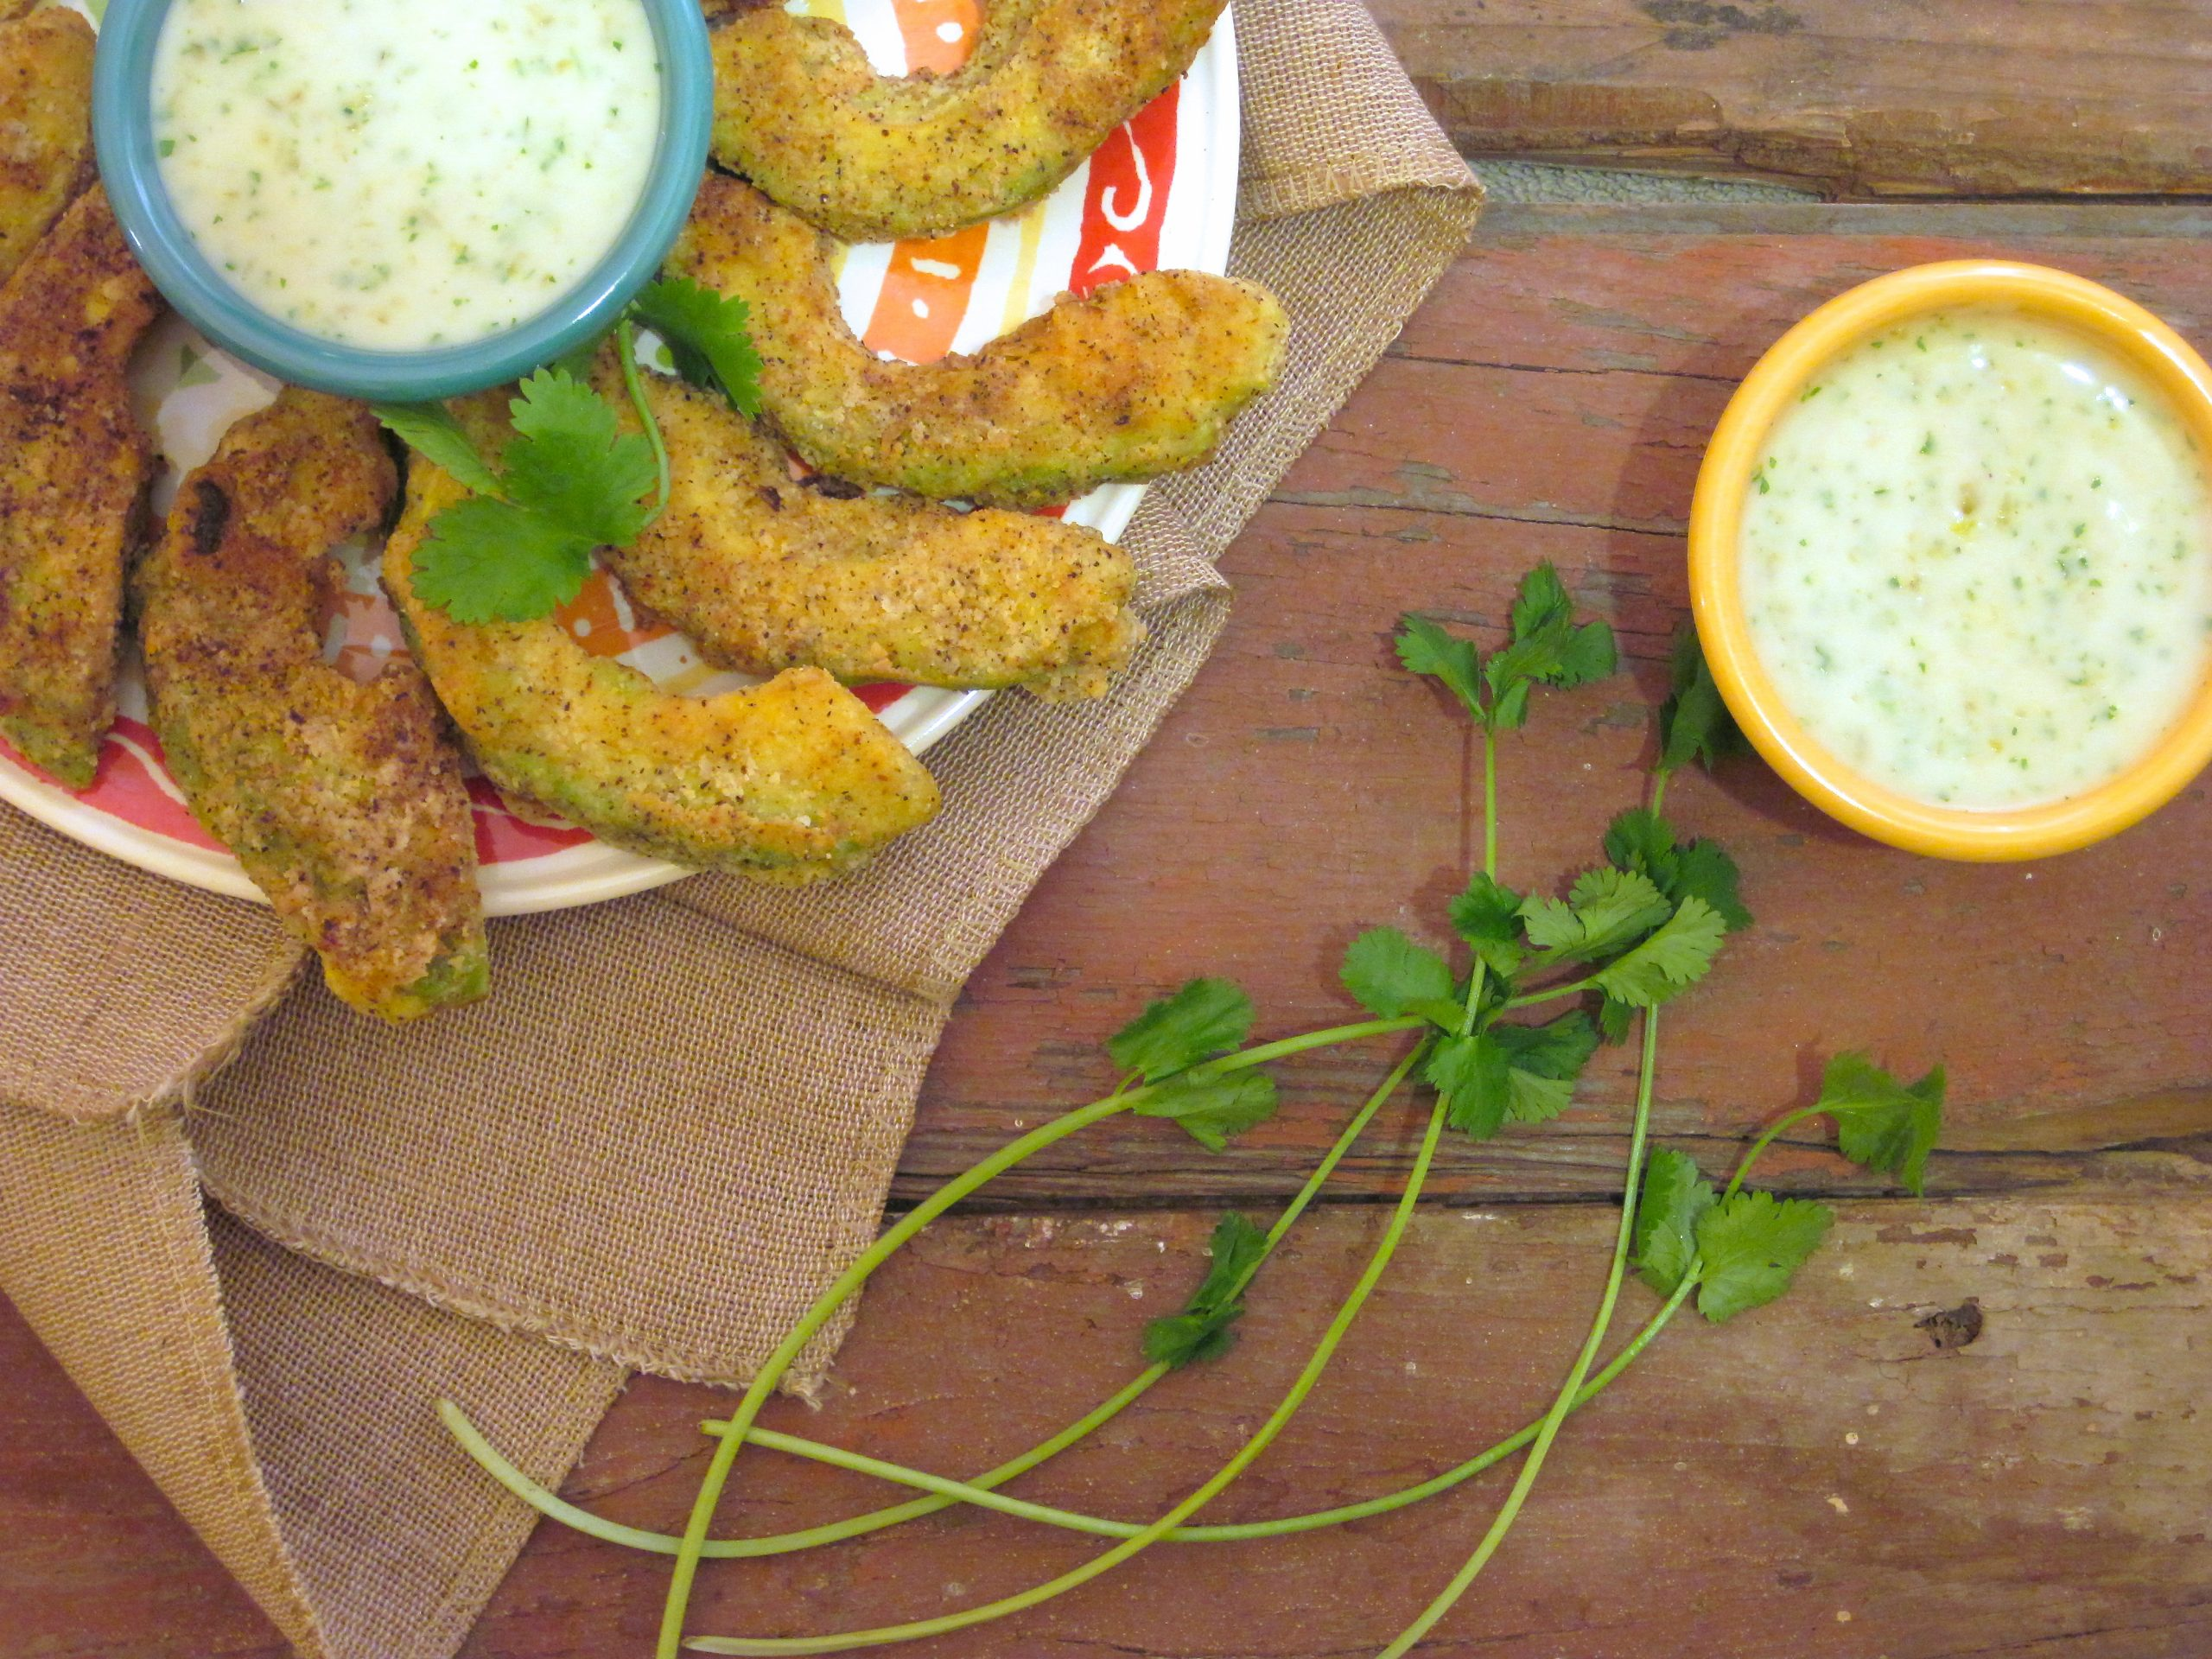 10 Snack, Appetizer, and Drink Ideas for your New Year's Party. All recipes are paleo-friendly, gluten free, and dairy free.   eatsomethingdelicious.com